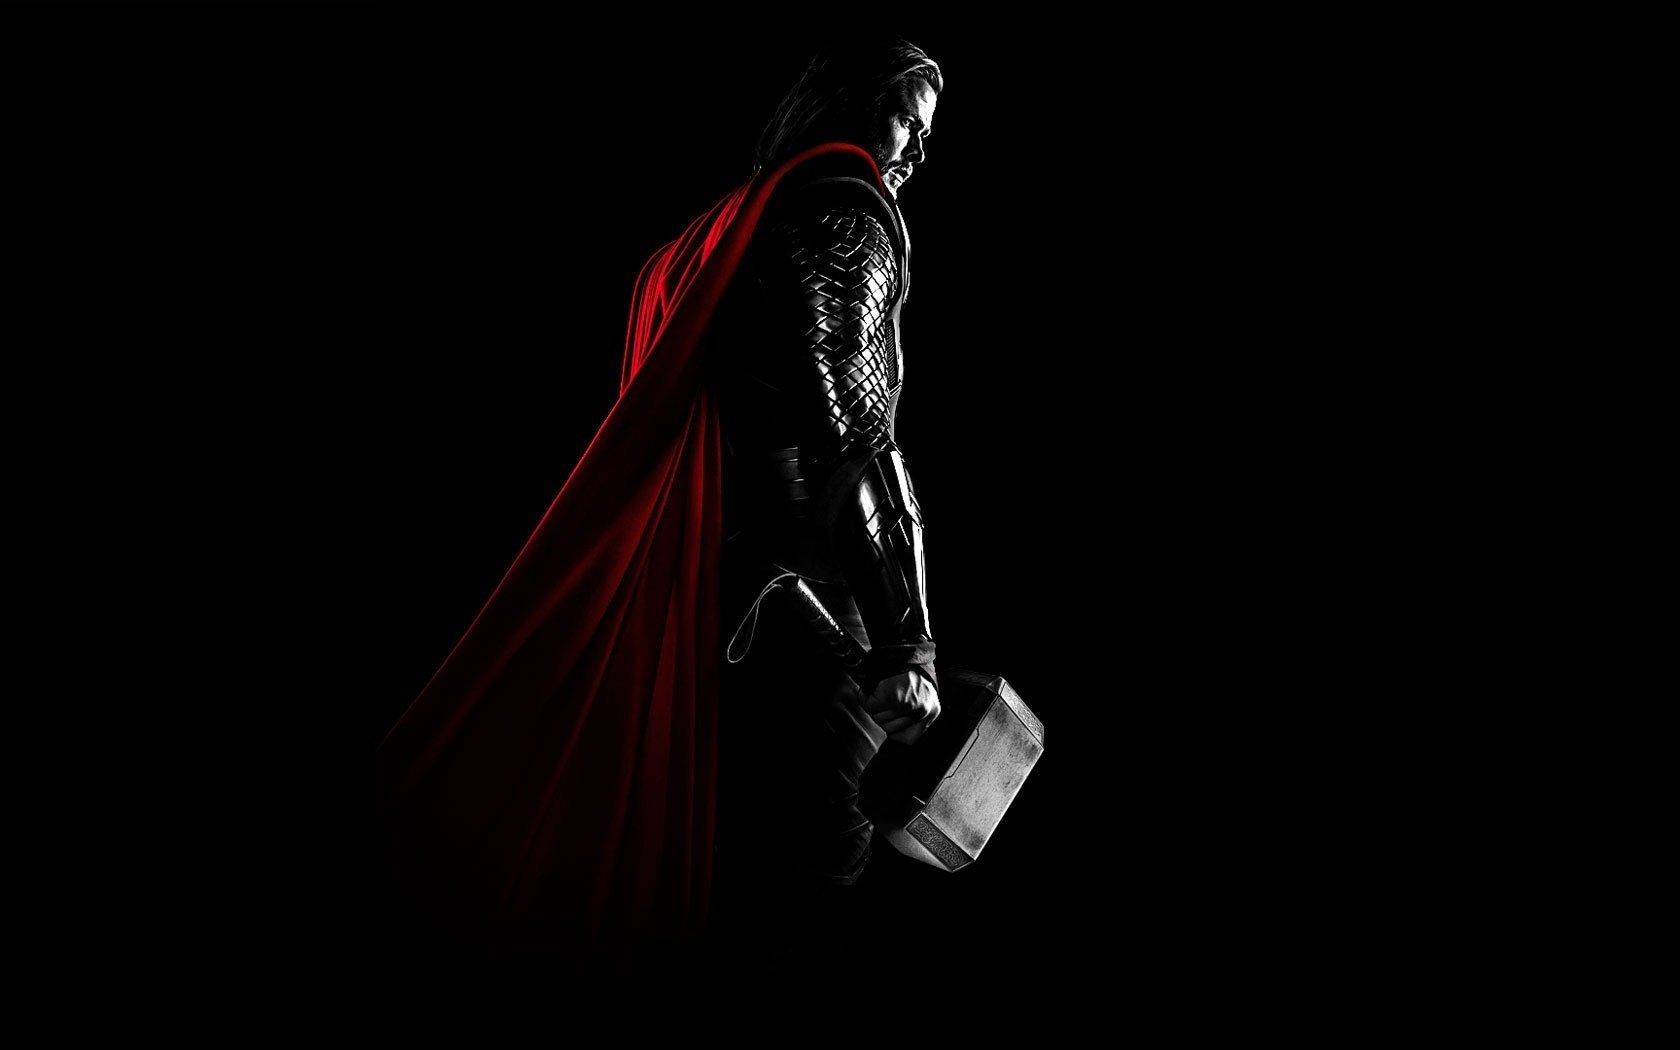 Thor Widescreen Movie Poster HD Wallpaper   Stylish HD Wallpapers 1680x1050